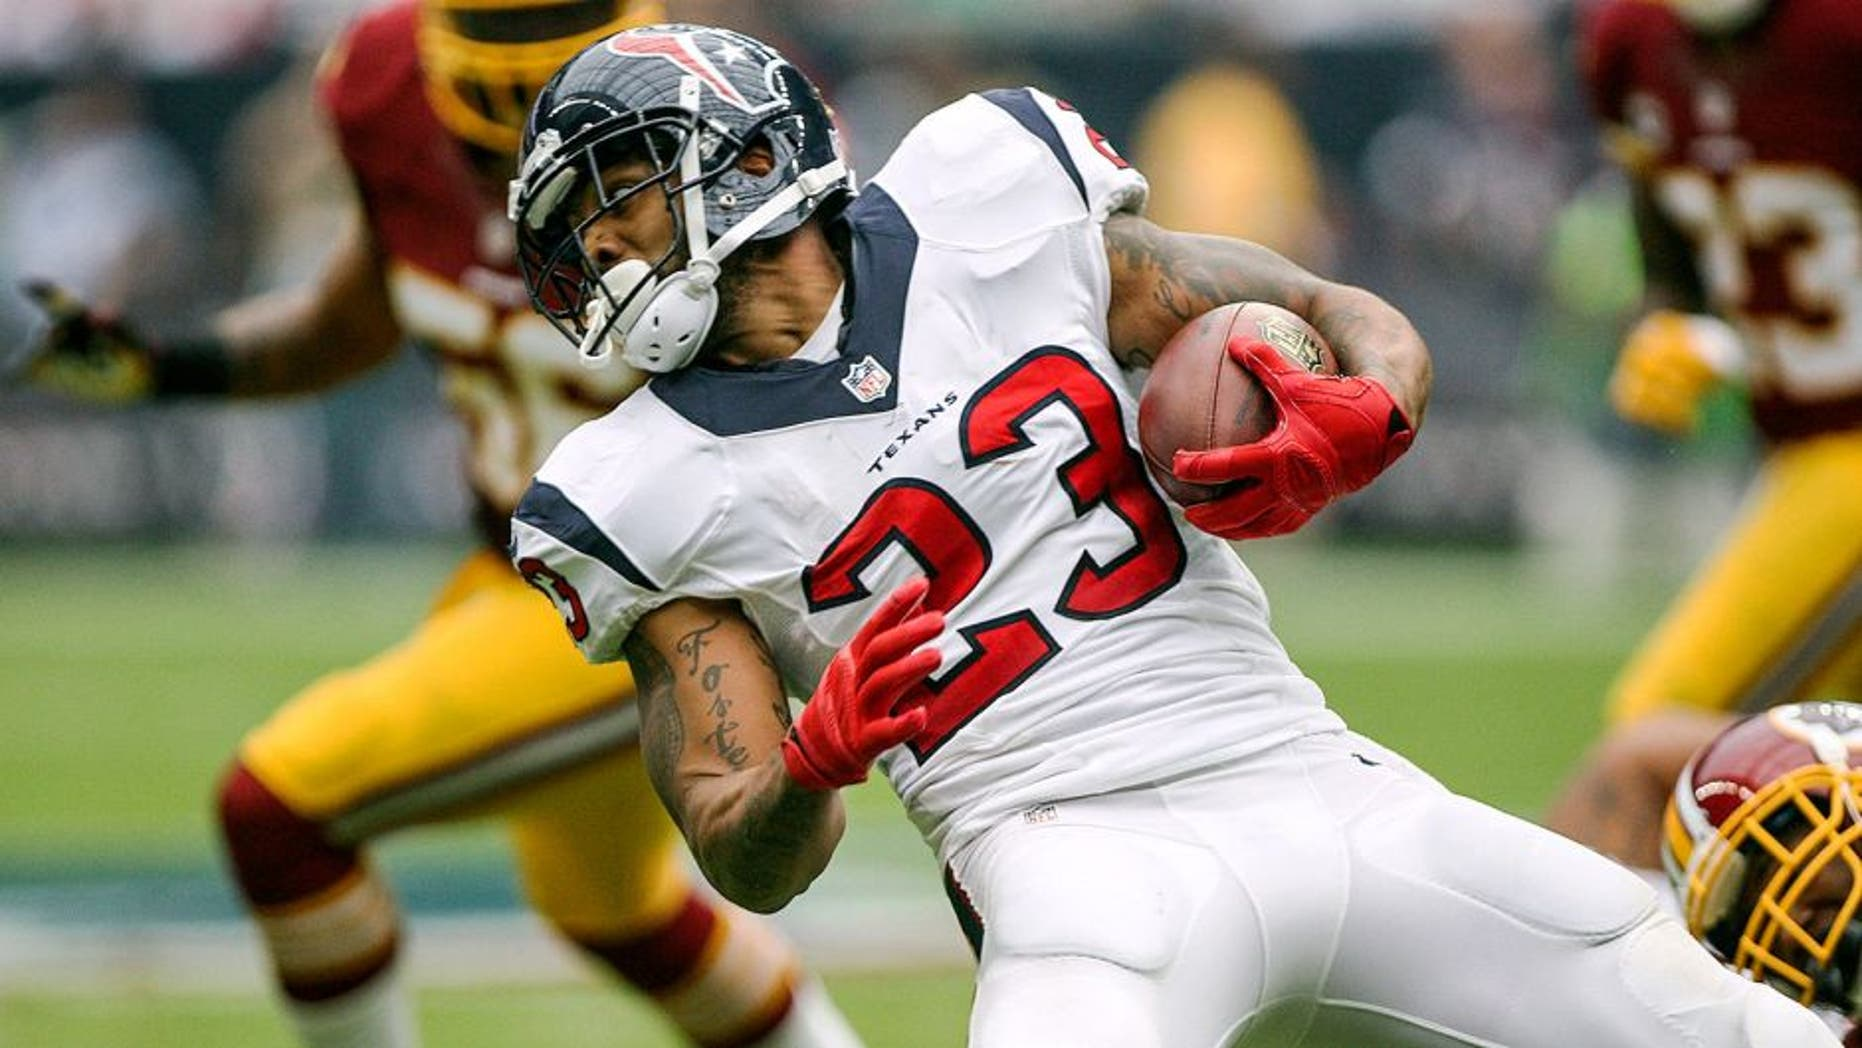 Sep 7, 2014; Houston, TX, USA; Houston Texans running back Arian Foster (23) runs with the ball during the first quarter against the Washington Redskins at NRG Stadium. Mandatory Credit: Troy Taormina-USA TODAY Sports